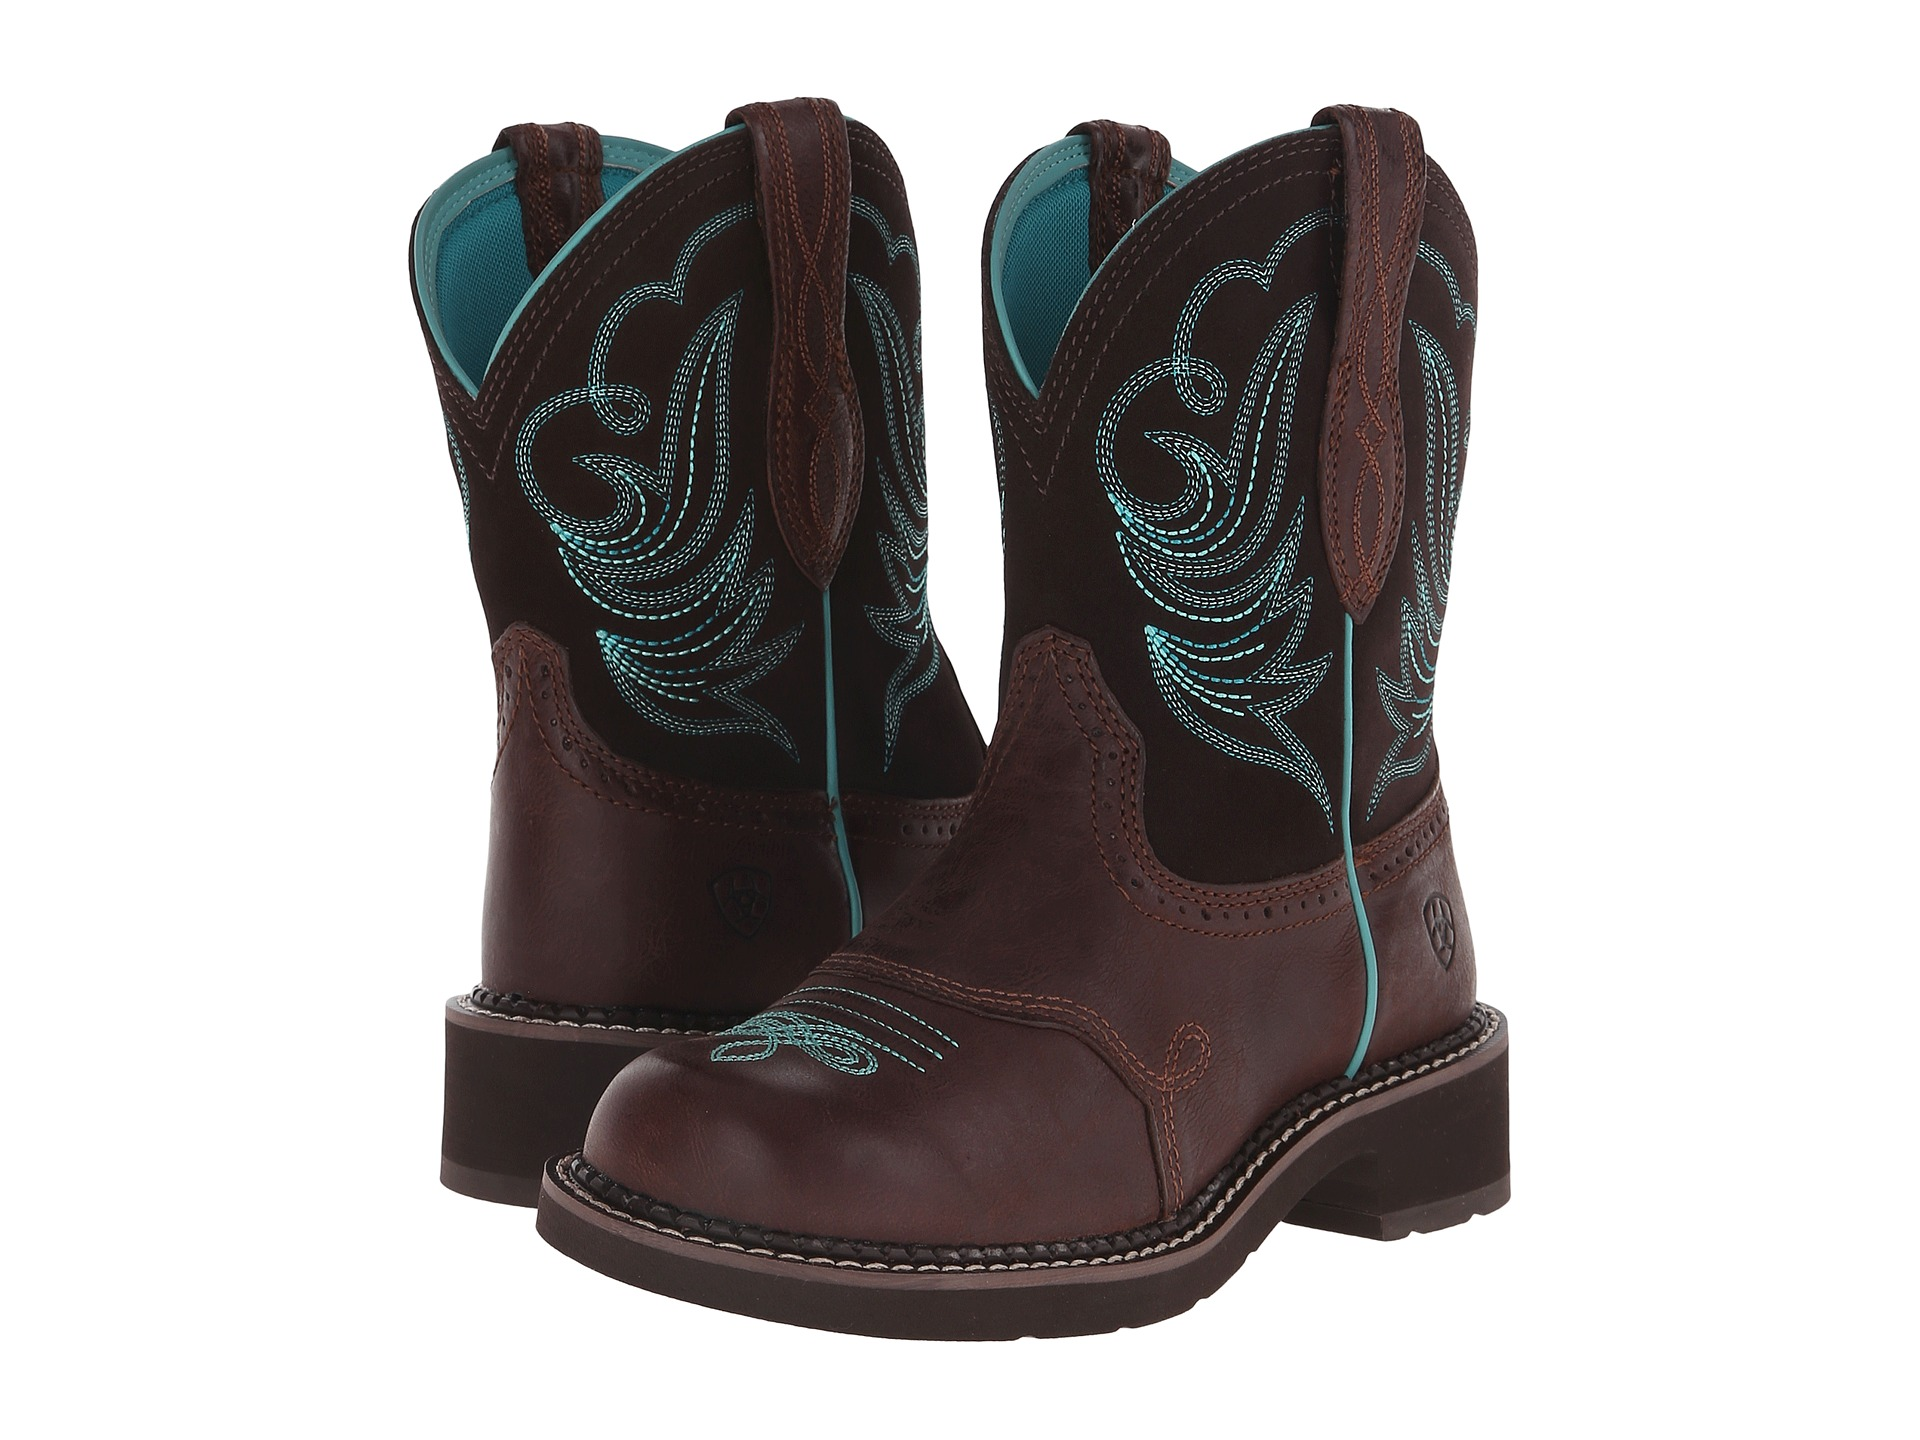 Ariat, Shoes, Women | Shipped Free at Zappos